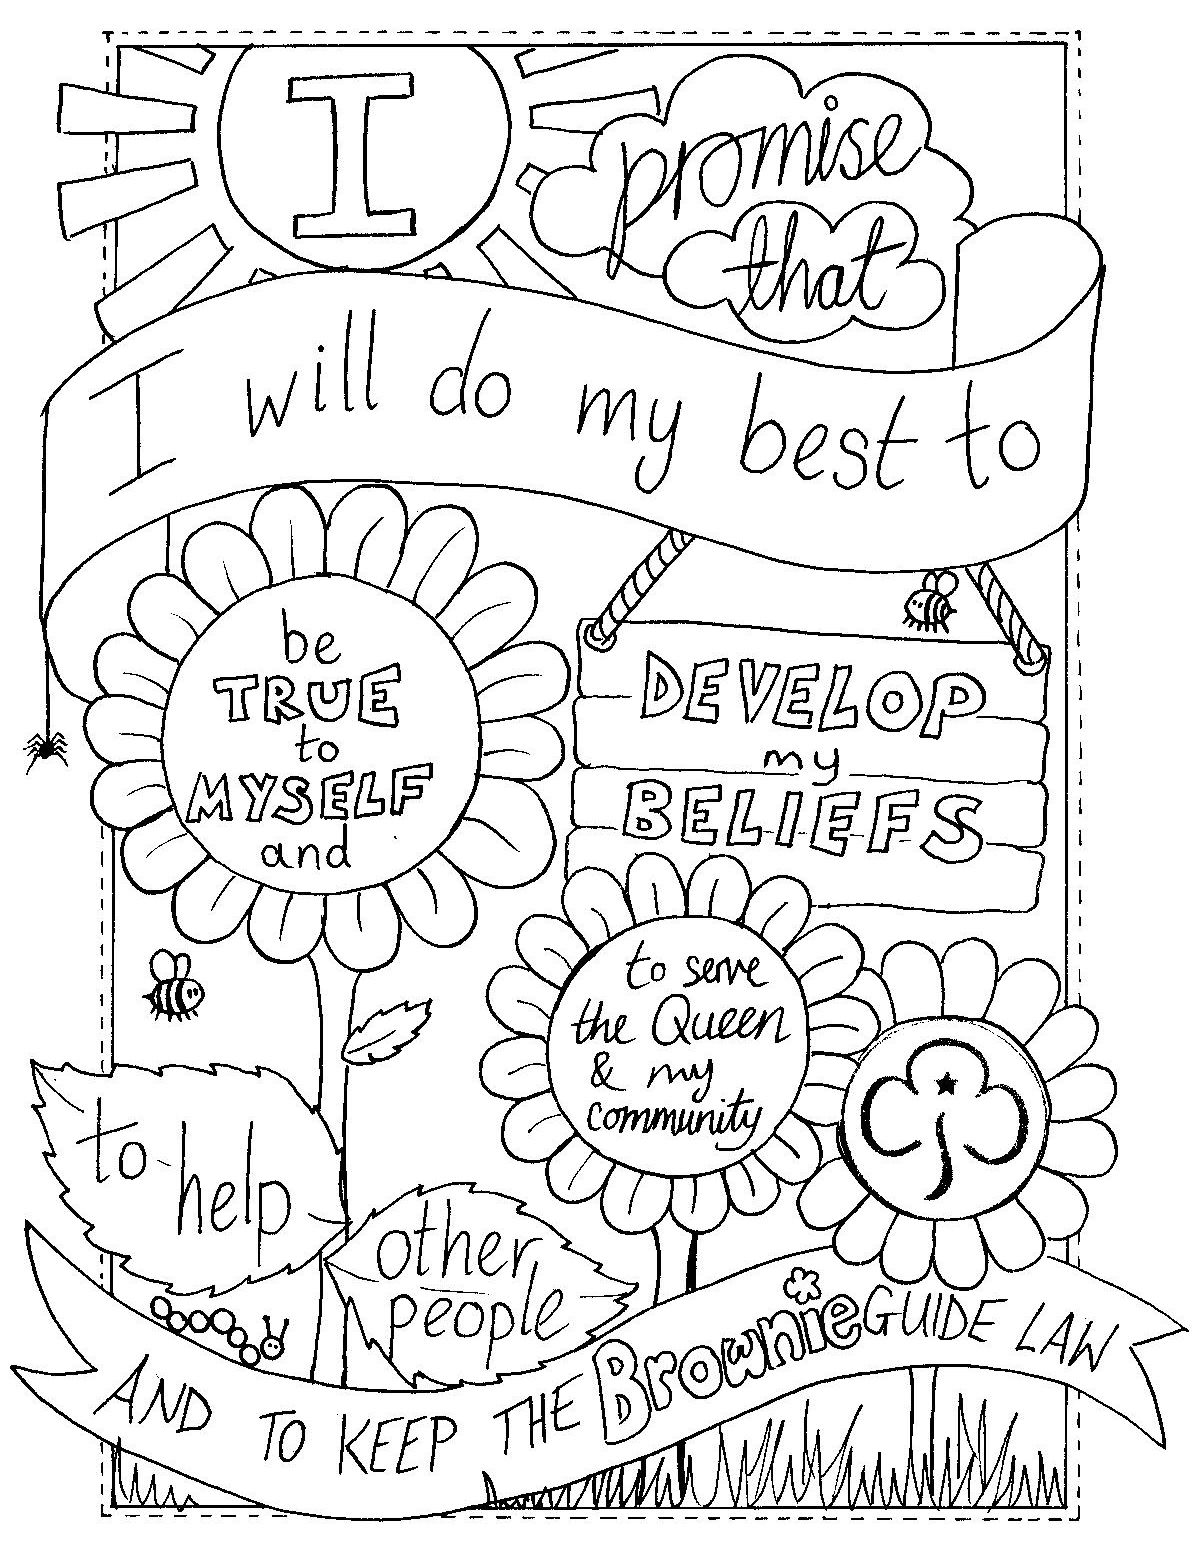 Uk Brownie Promise Colouring Sheet Created By Emyb Emy